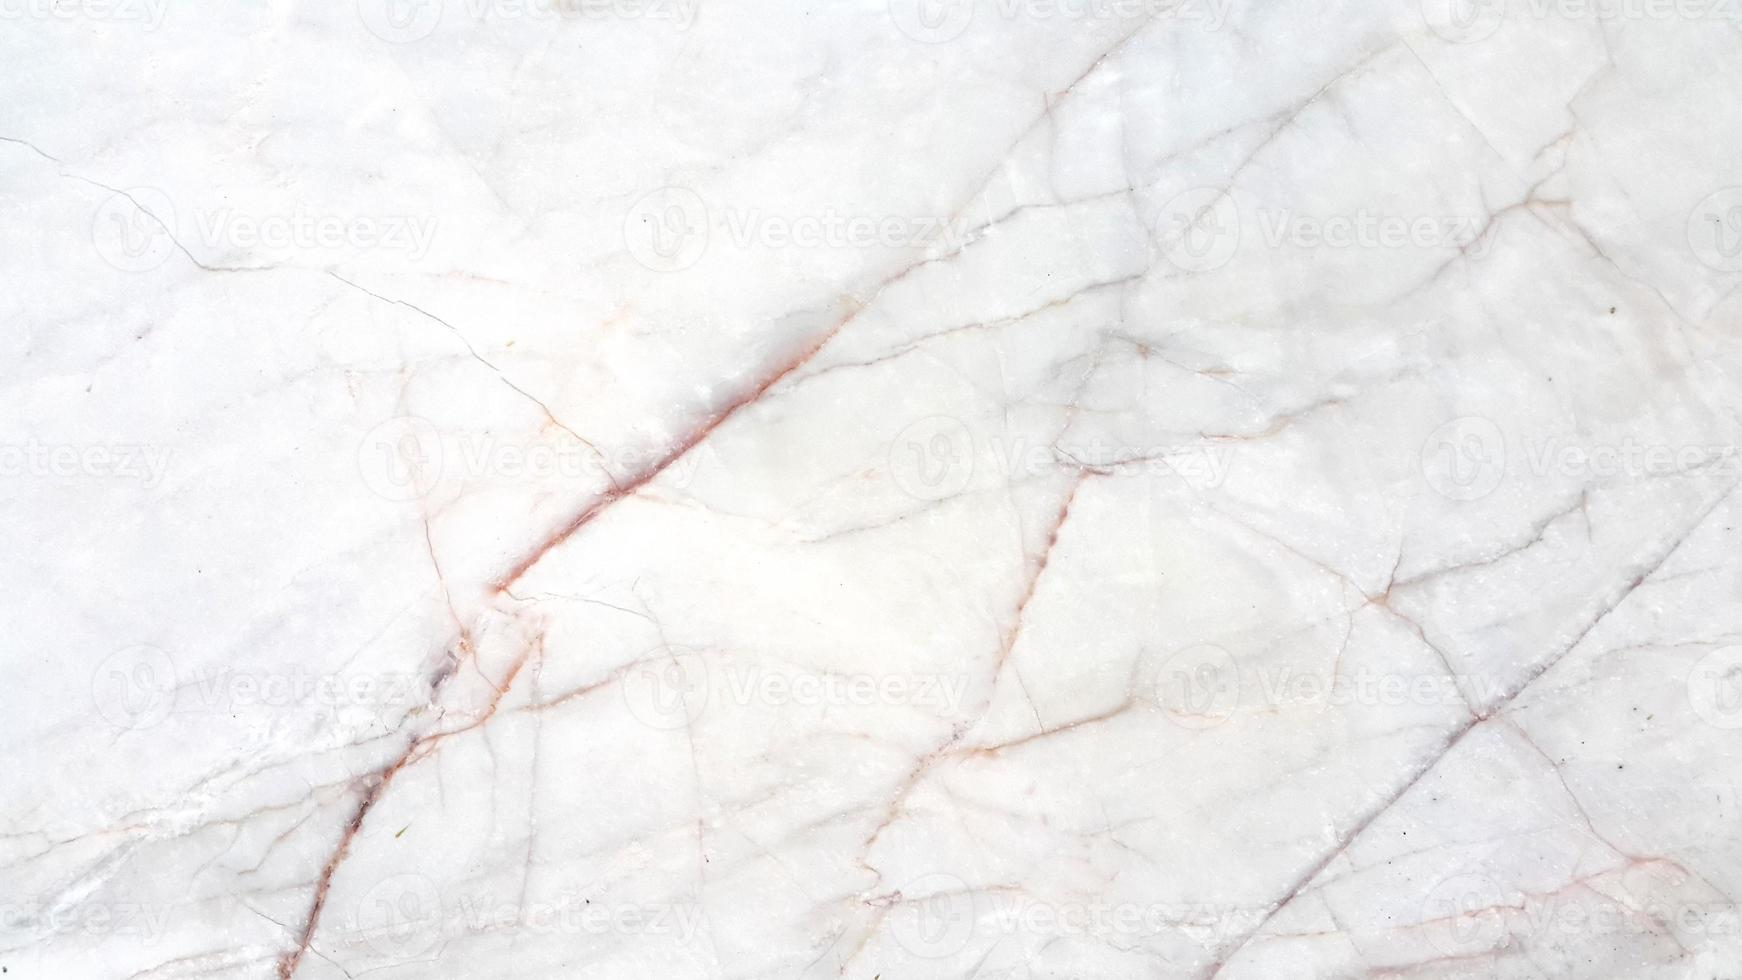 Patterns on the marble surface that looks natural photo